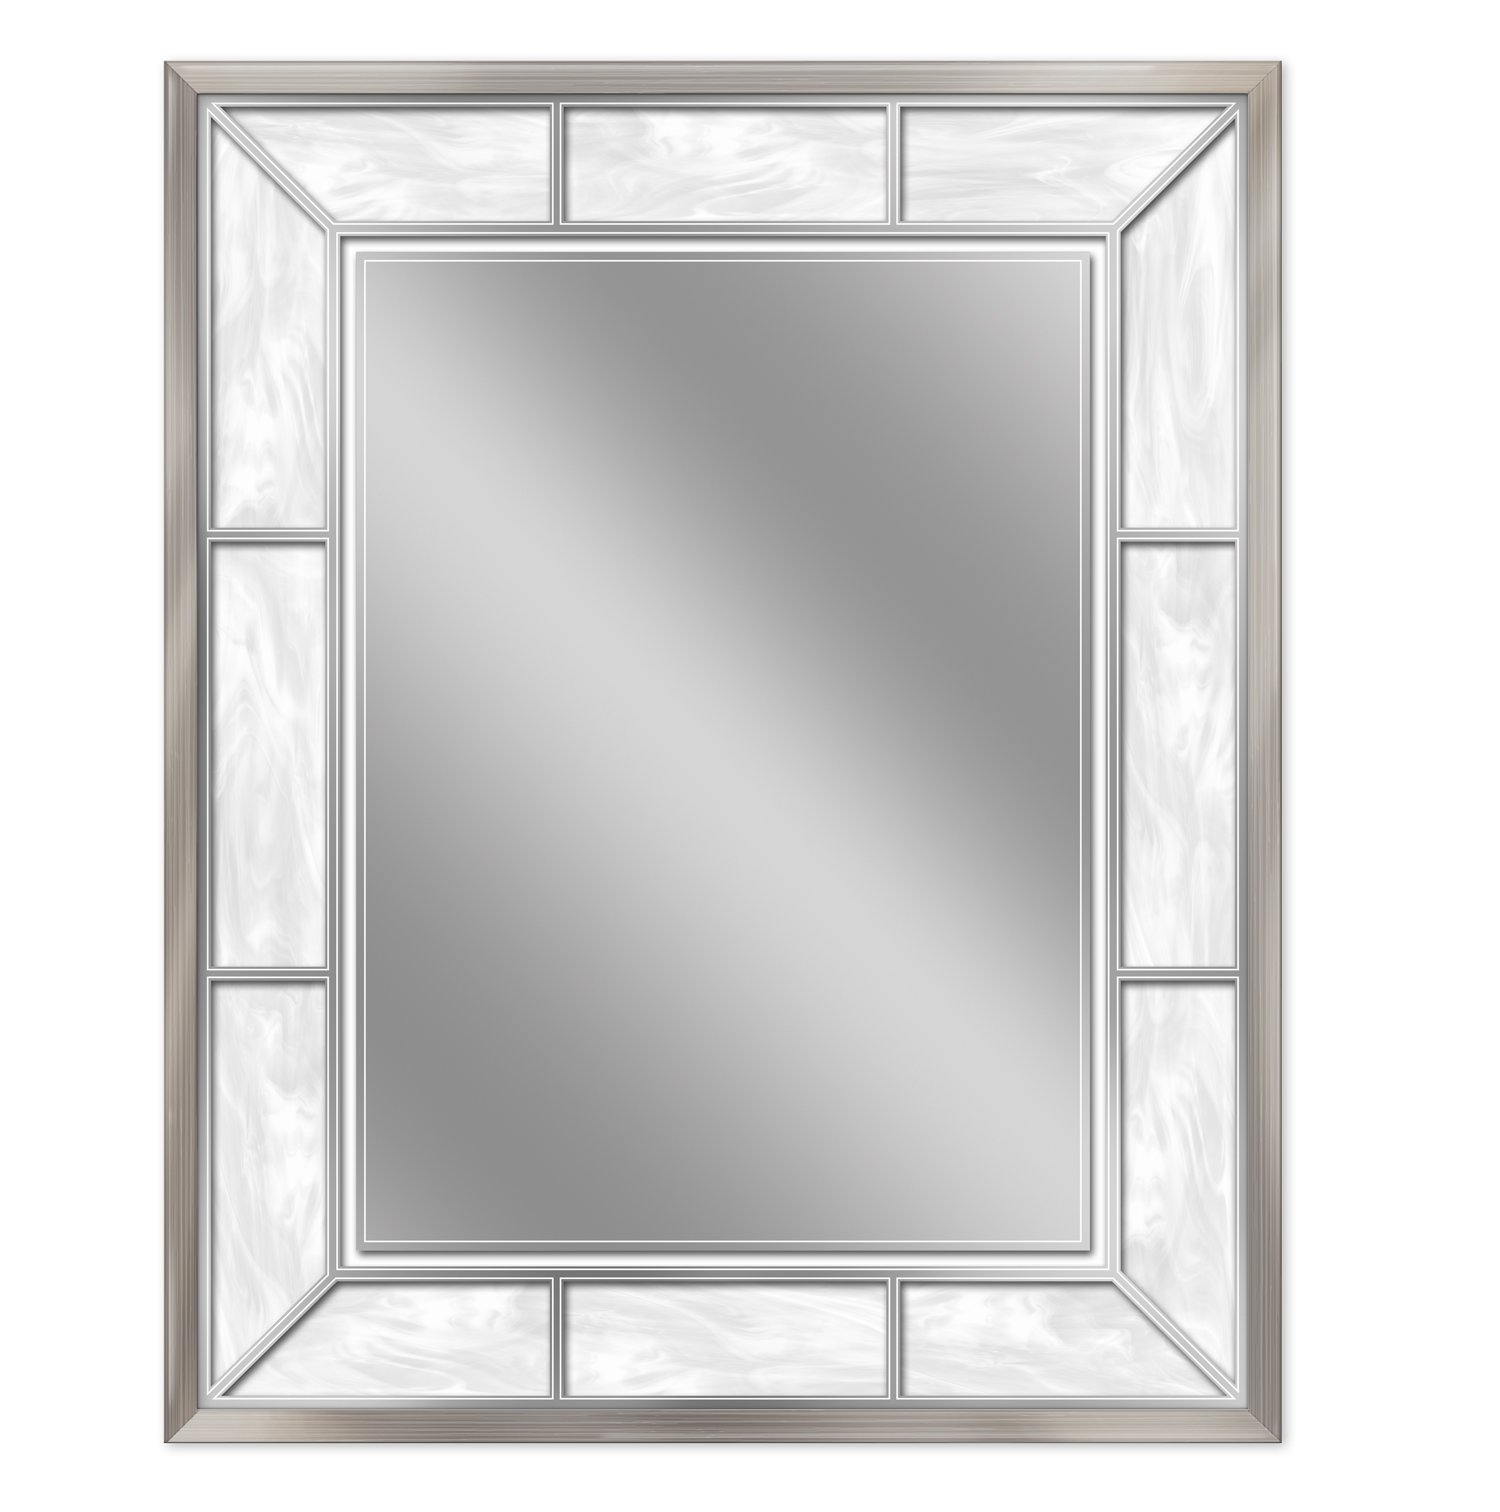 Headwest 8003 Alabaster Wall Mirror in BN, Brown